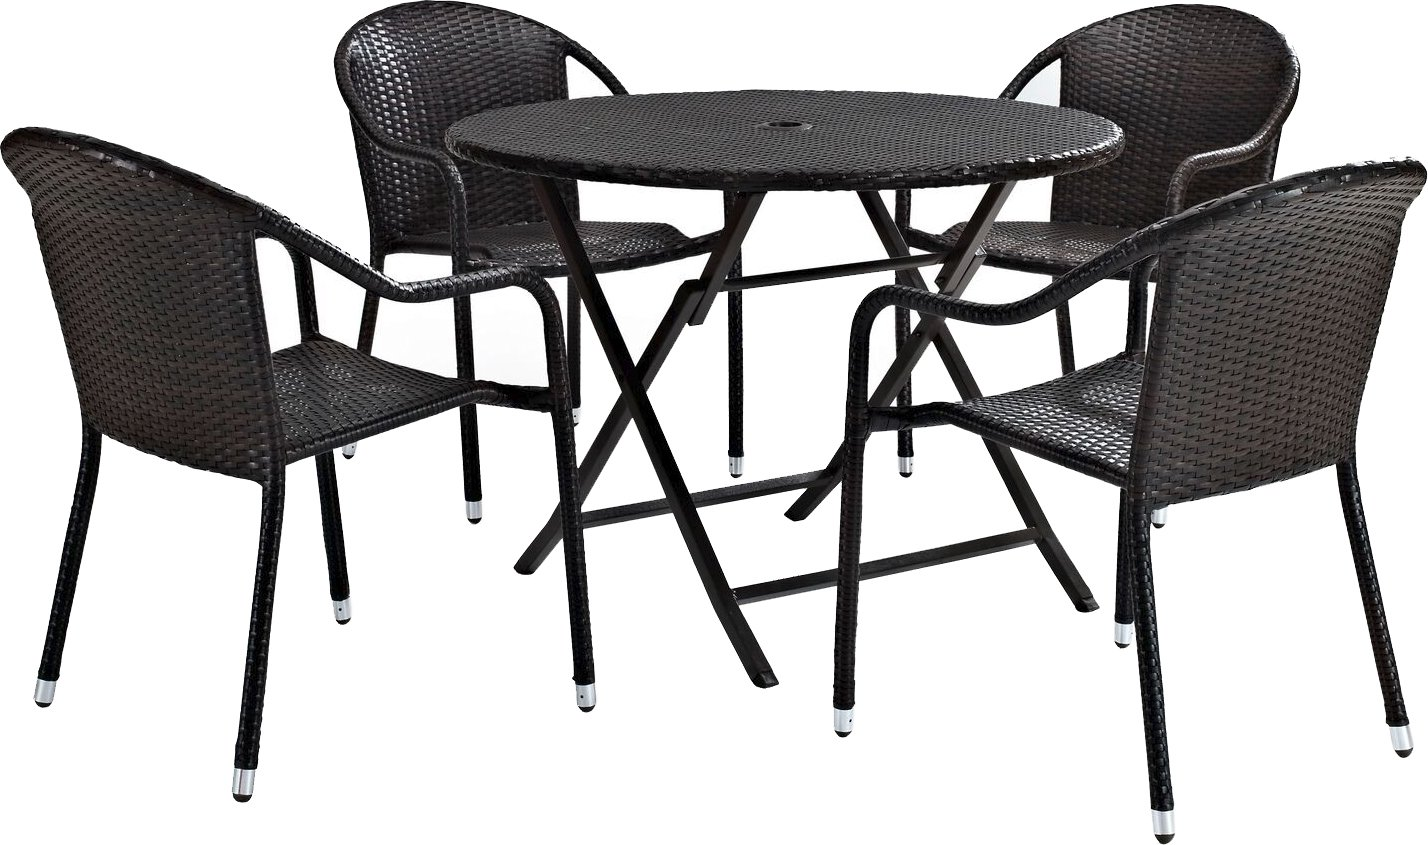 Crosley Furniture Palm Harbor 5-Piece Outdoor Wicker Cafe Dining Set – Brown